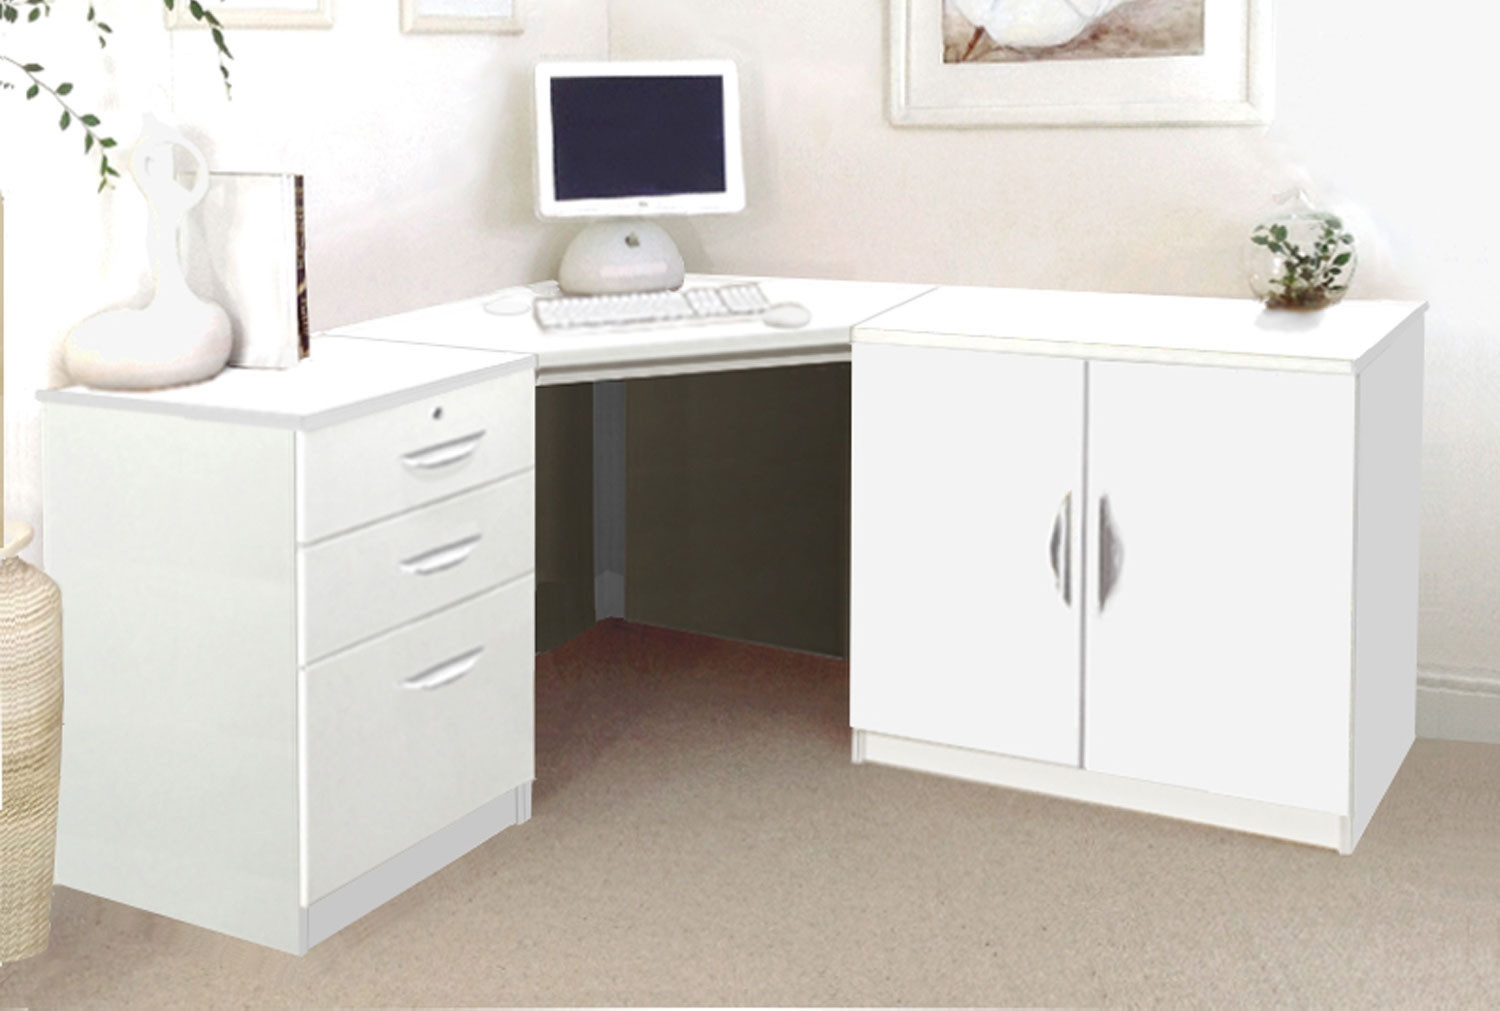 Small Office Corner Desk Set With 3 Drawers Cupboard White Furniture At Work